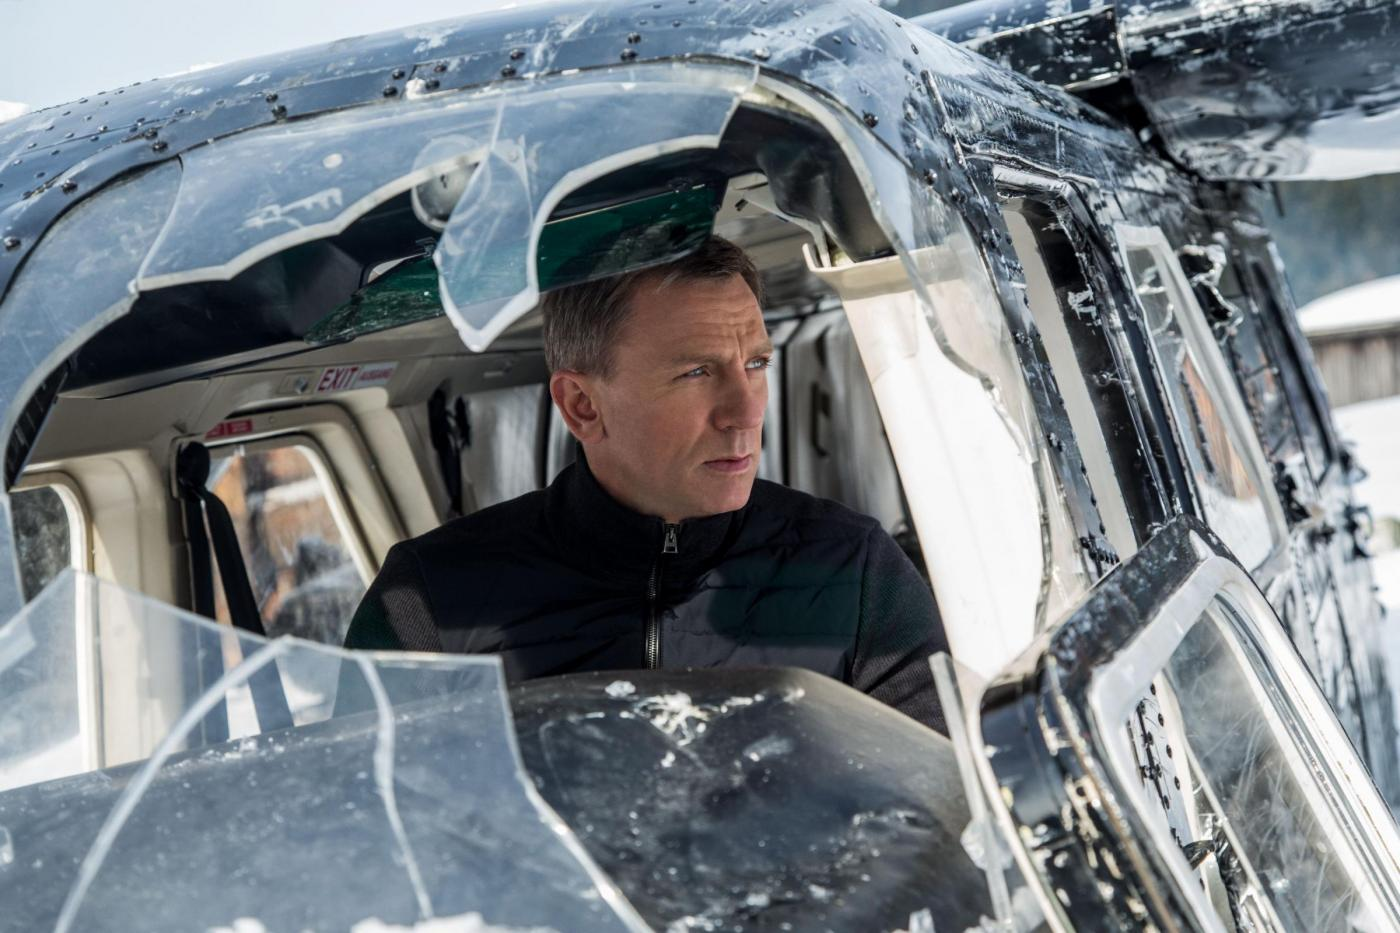 007 Spectre: personaggi del nuovo film di James Bond al cinema dal 5 novembre 2015